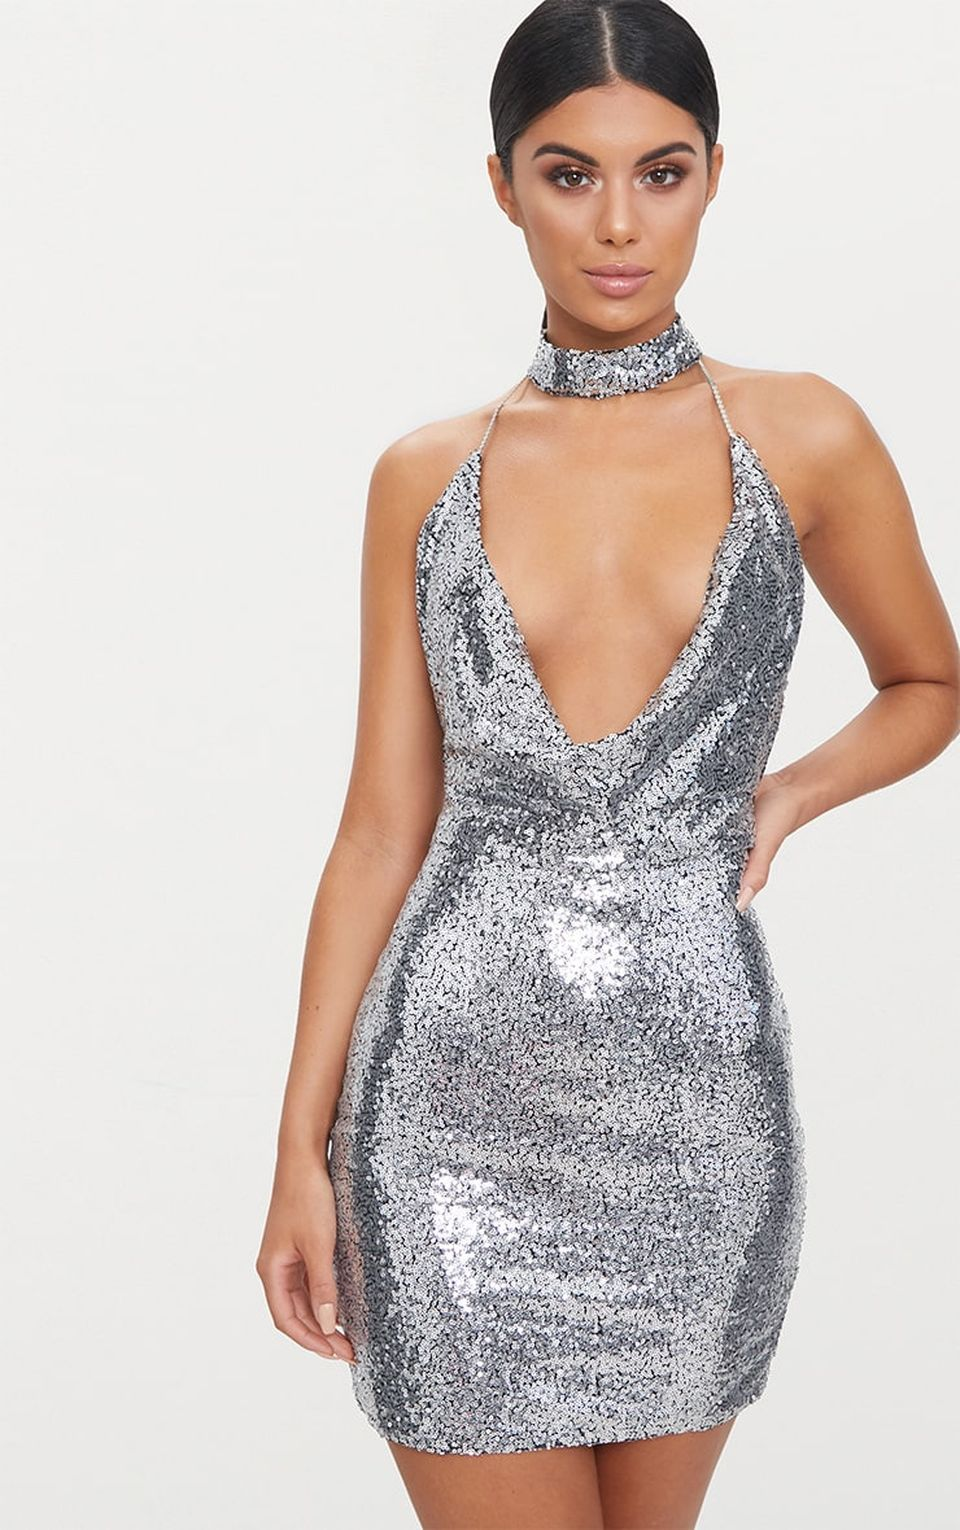 Sequin dress for new year eve party and night out 84